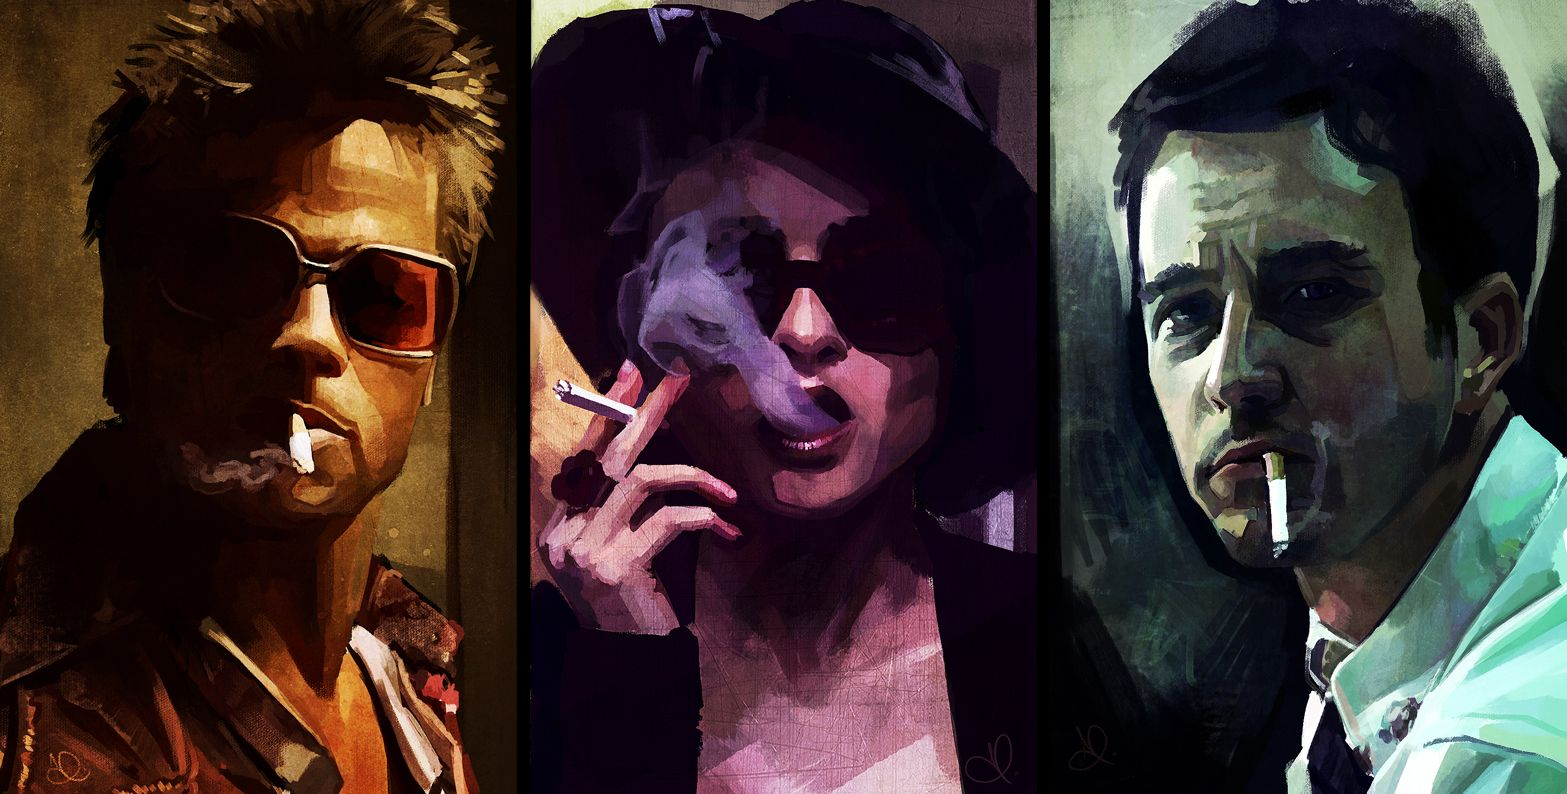 Art for the Fight Club movie